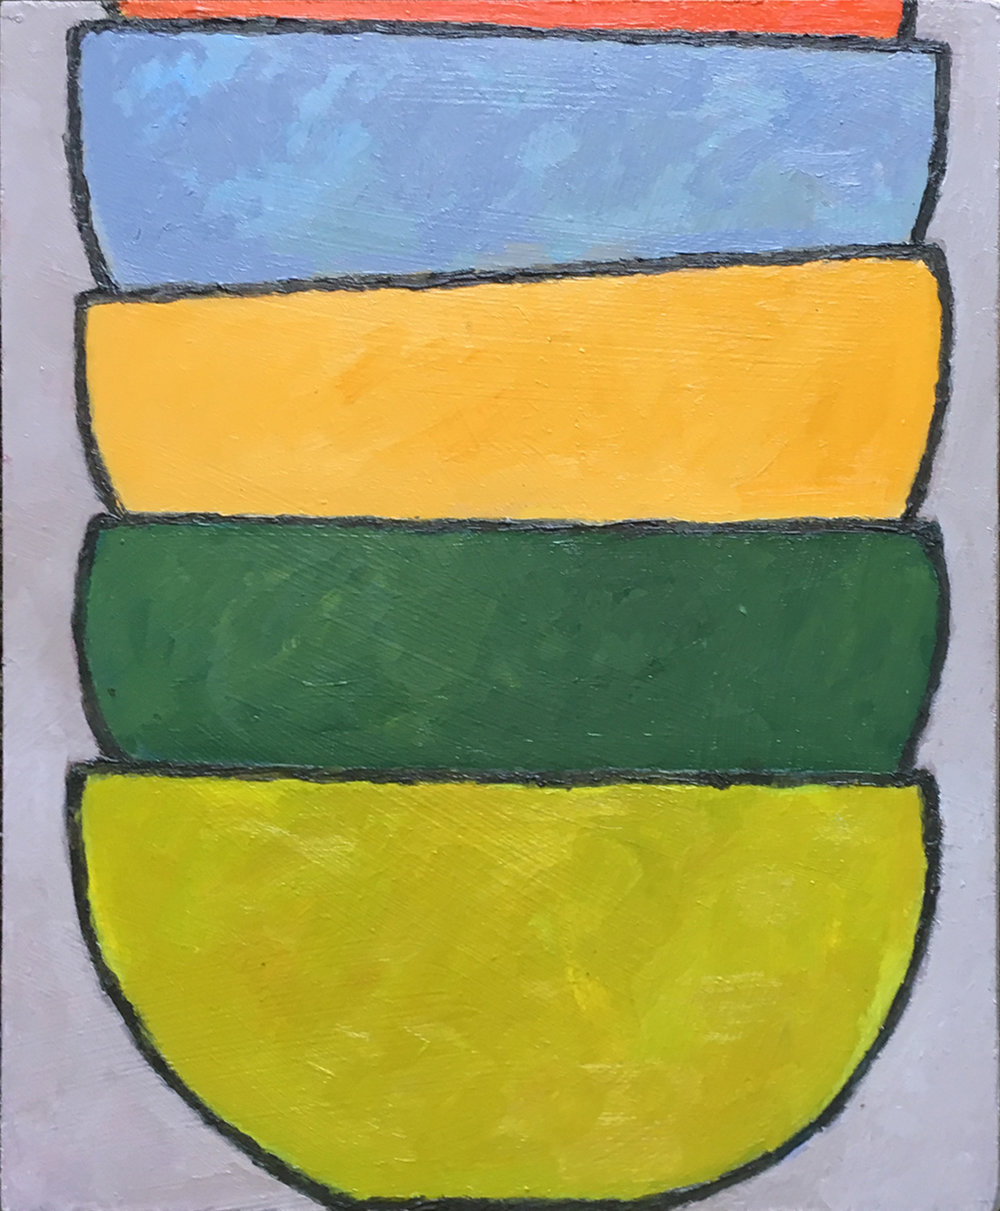 #8 (2018), oil on MDF board, 23cm x 19cm. Price on request.